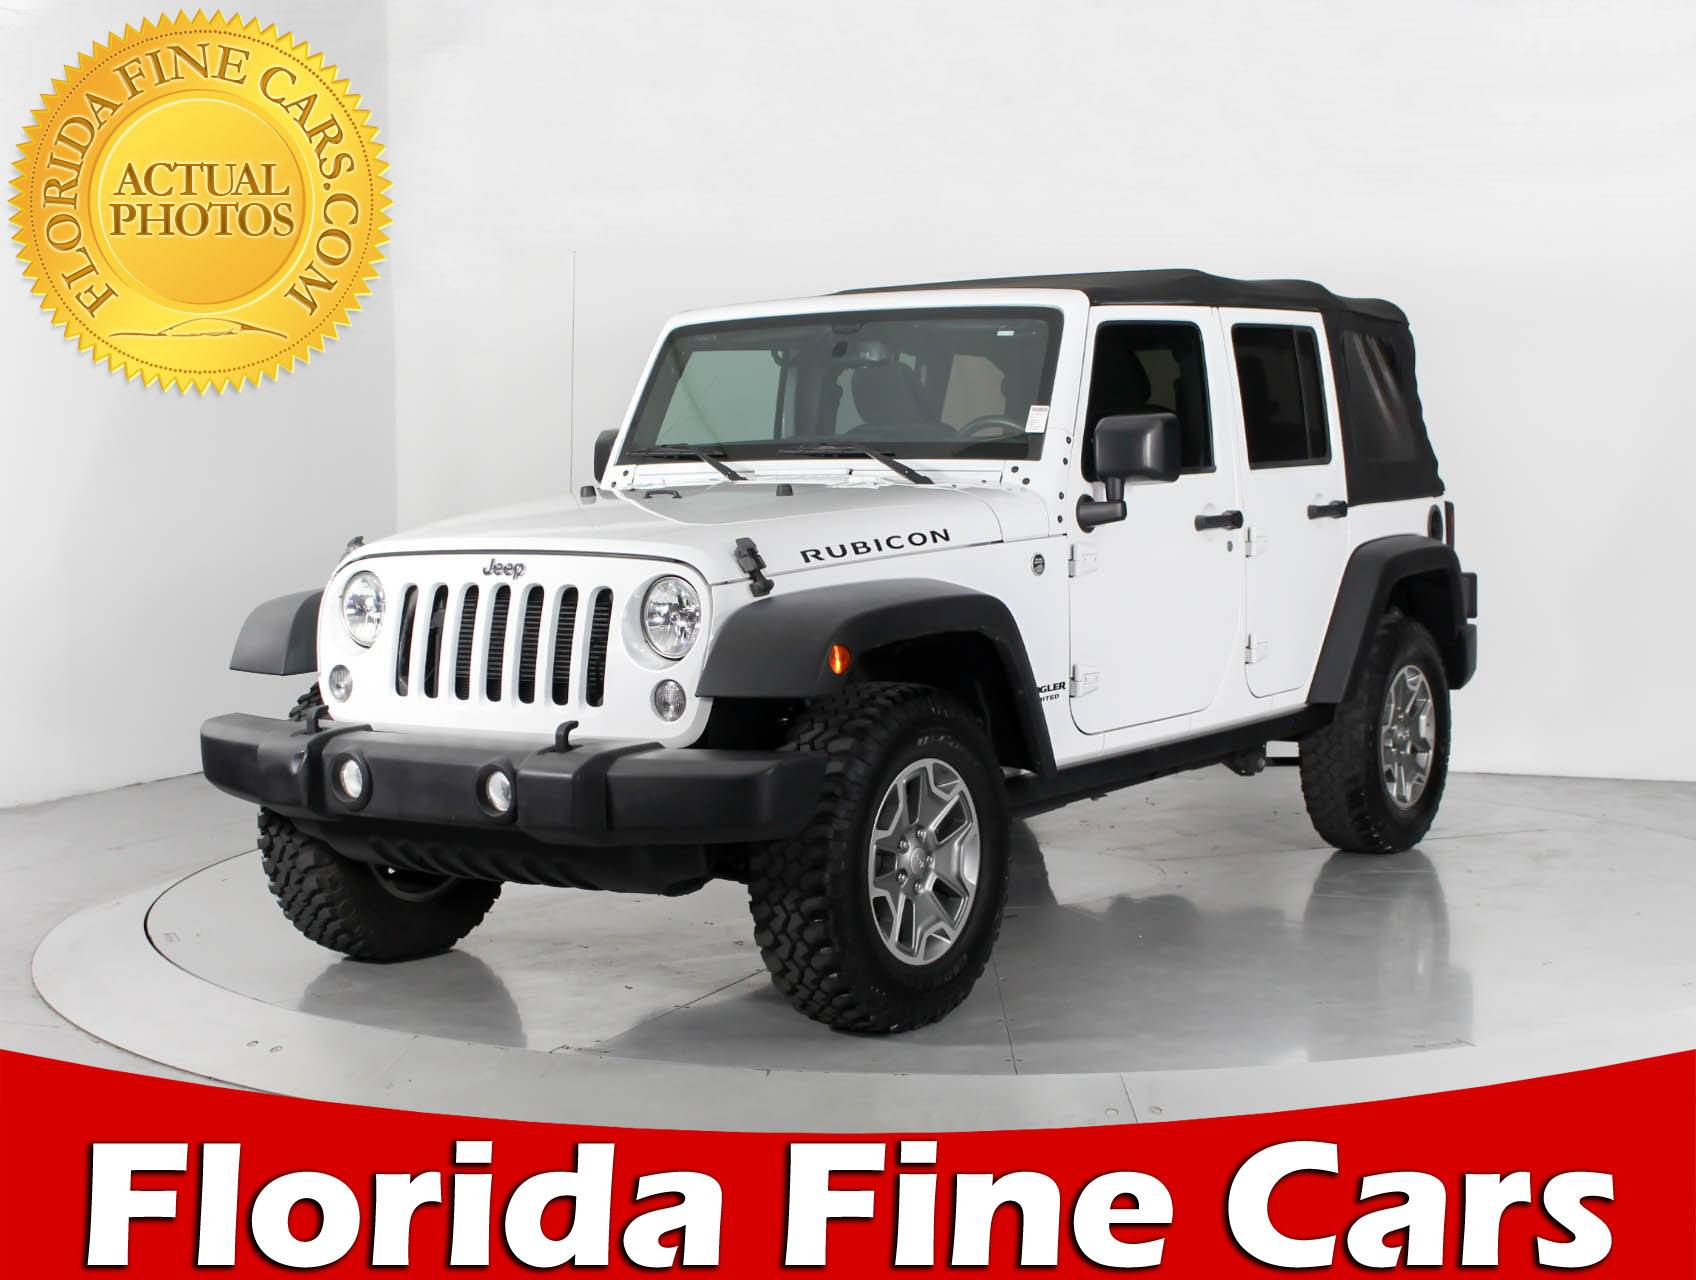 Used 2015 JEEP WRANGLER UNLIMITED RUBICON SUV for sale in WEST PALM